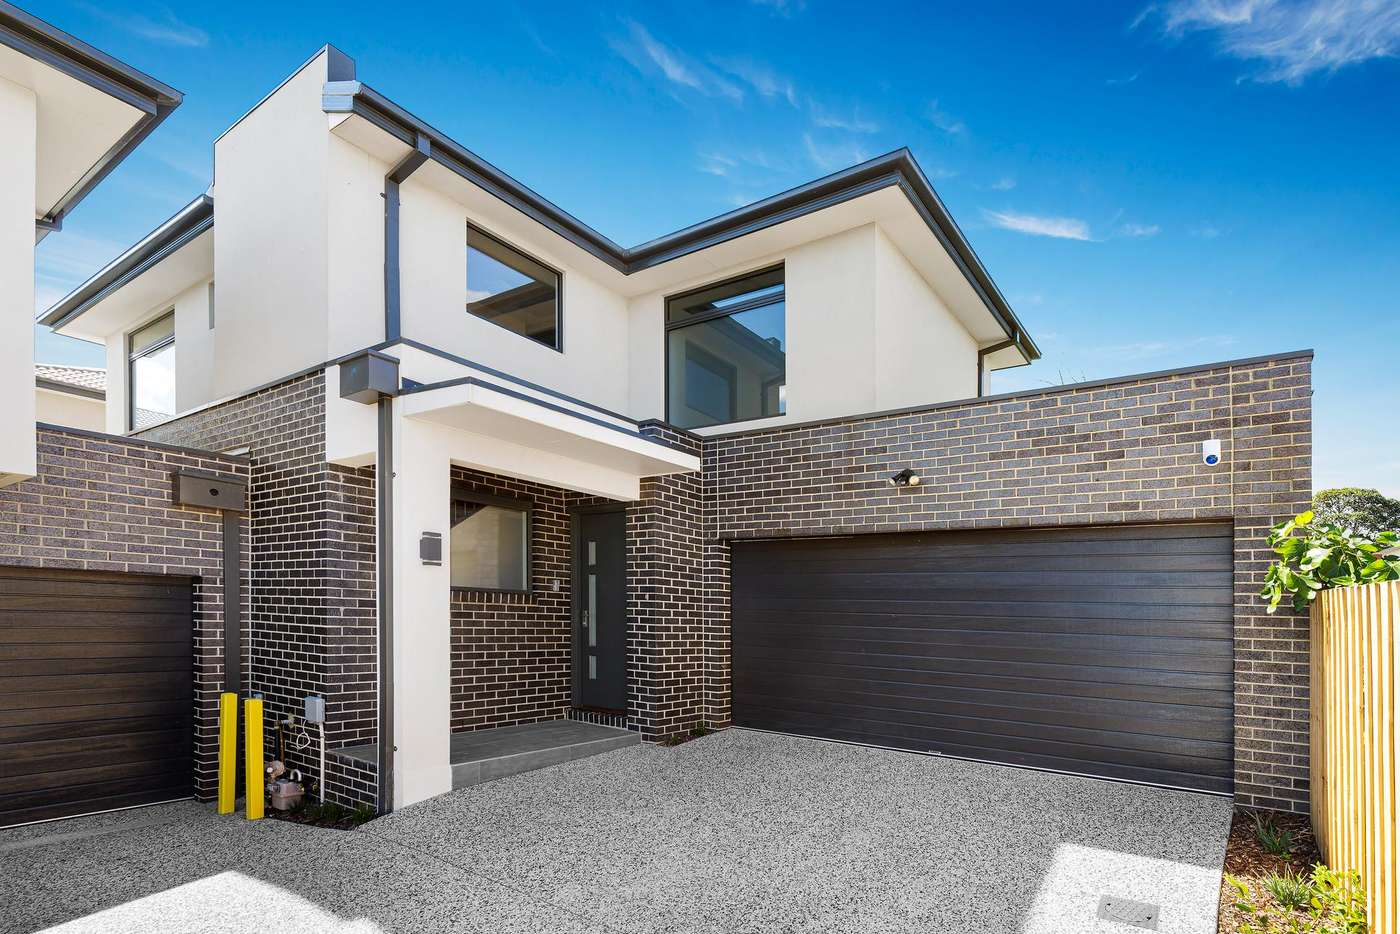 Main view of Homely townhouse listing, 3/61 Renshaw Street, Doncaster East VIC 3109